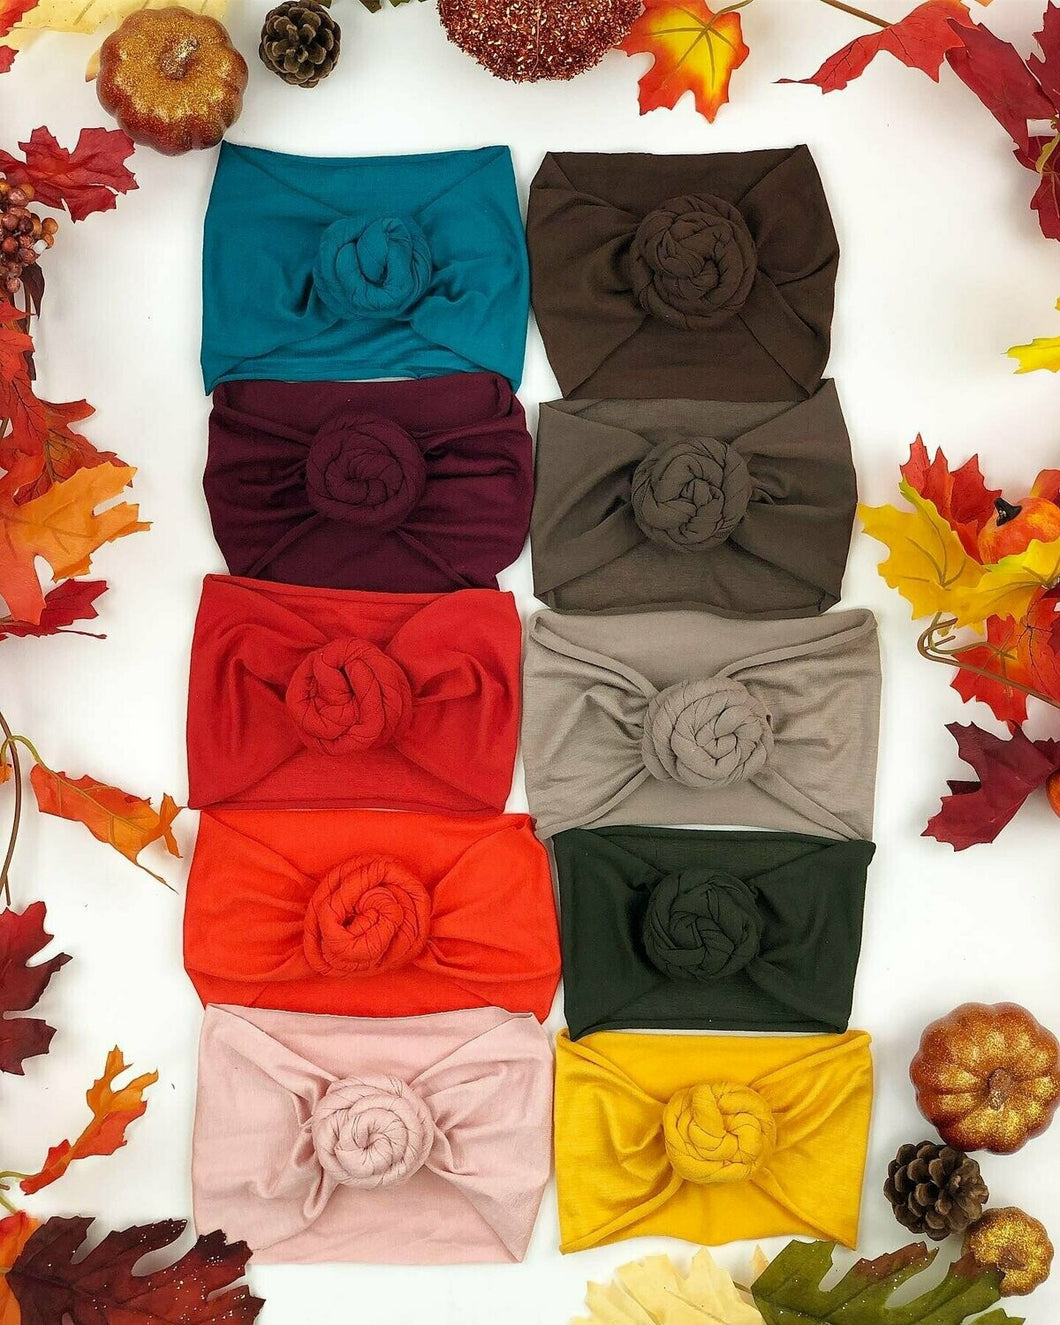 Solid color Rose knot headband (different colors)